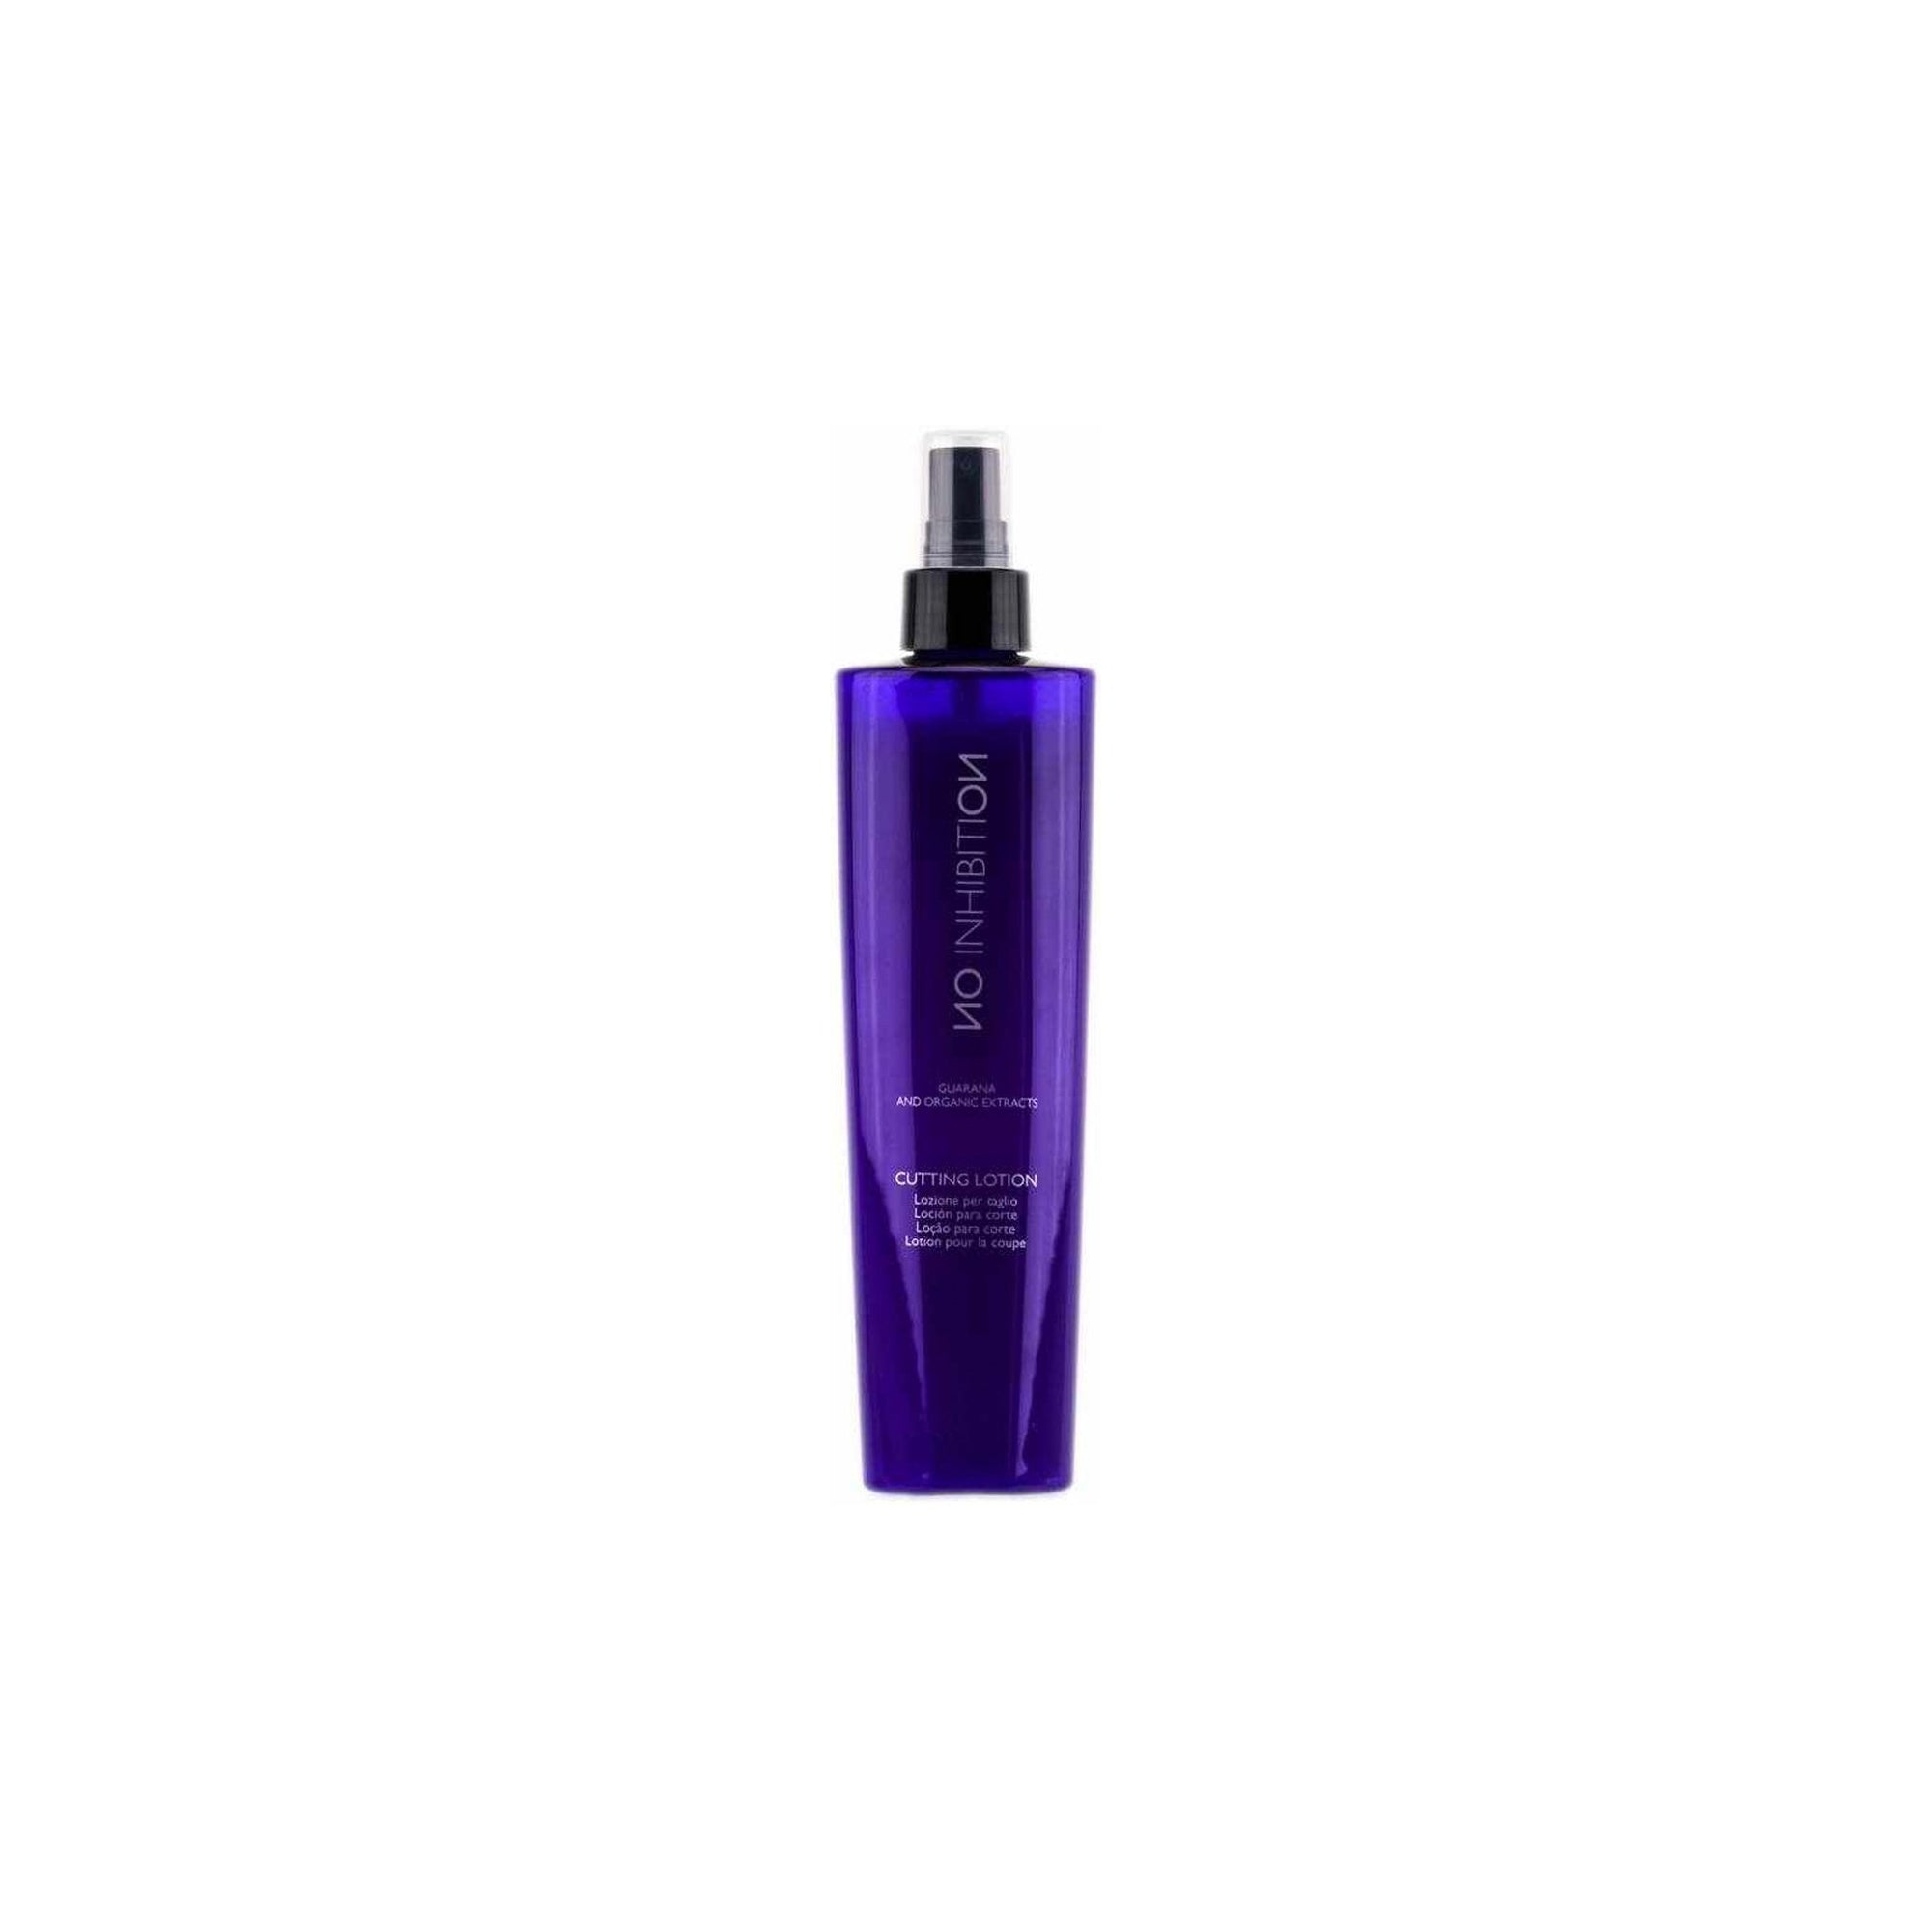 No Inhibition Cutting Lotion 250ml